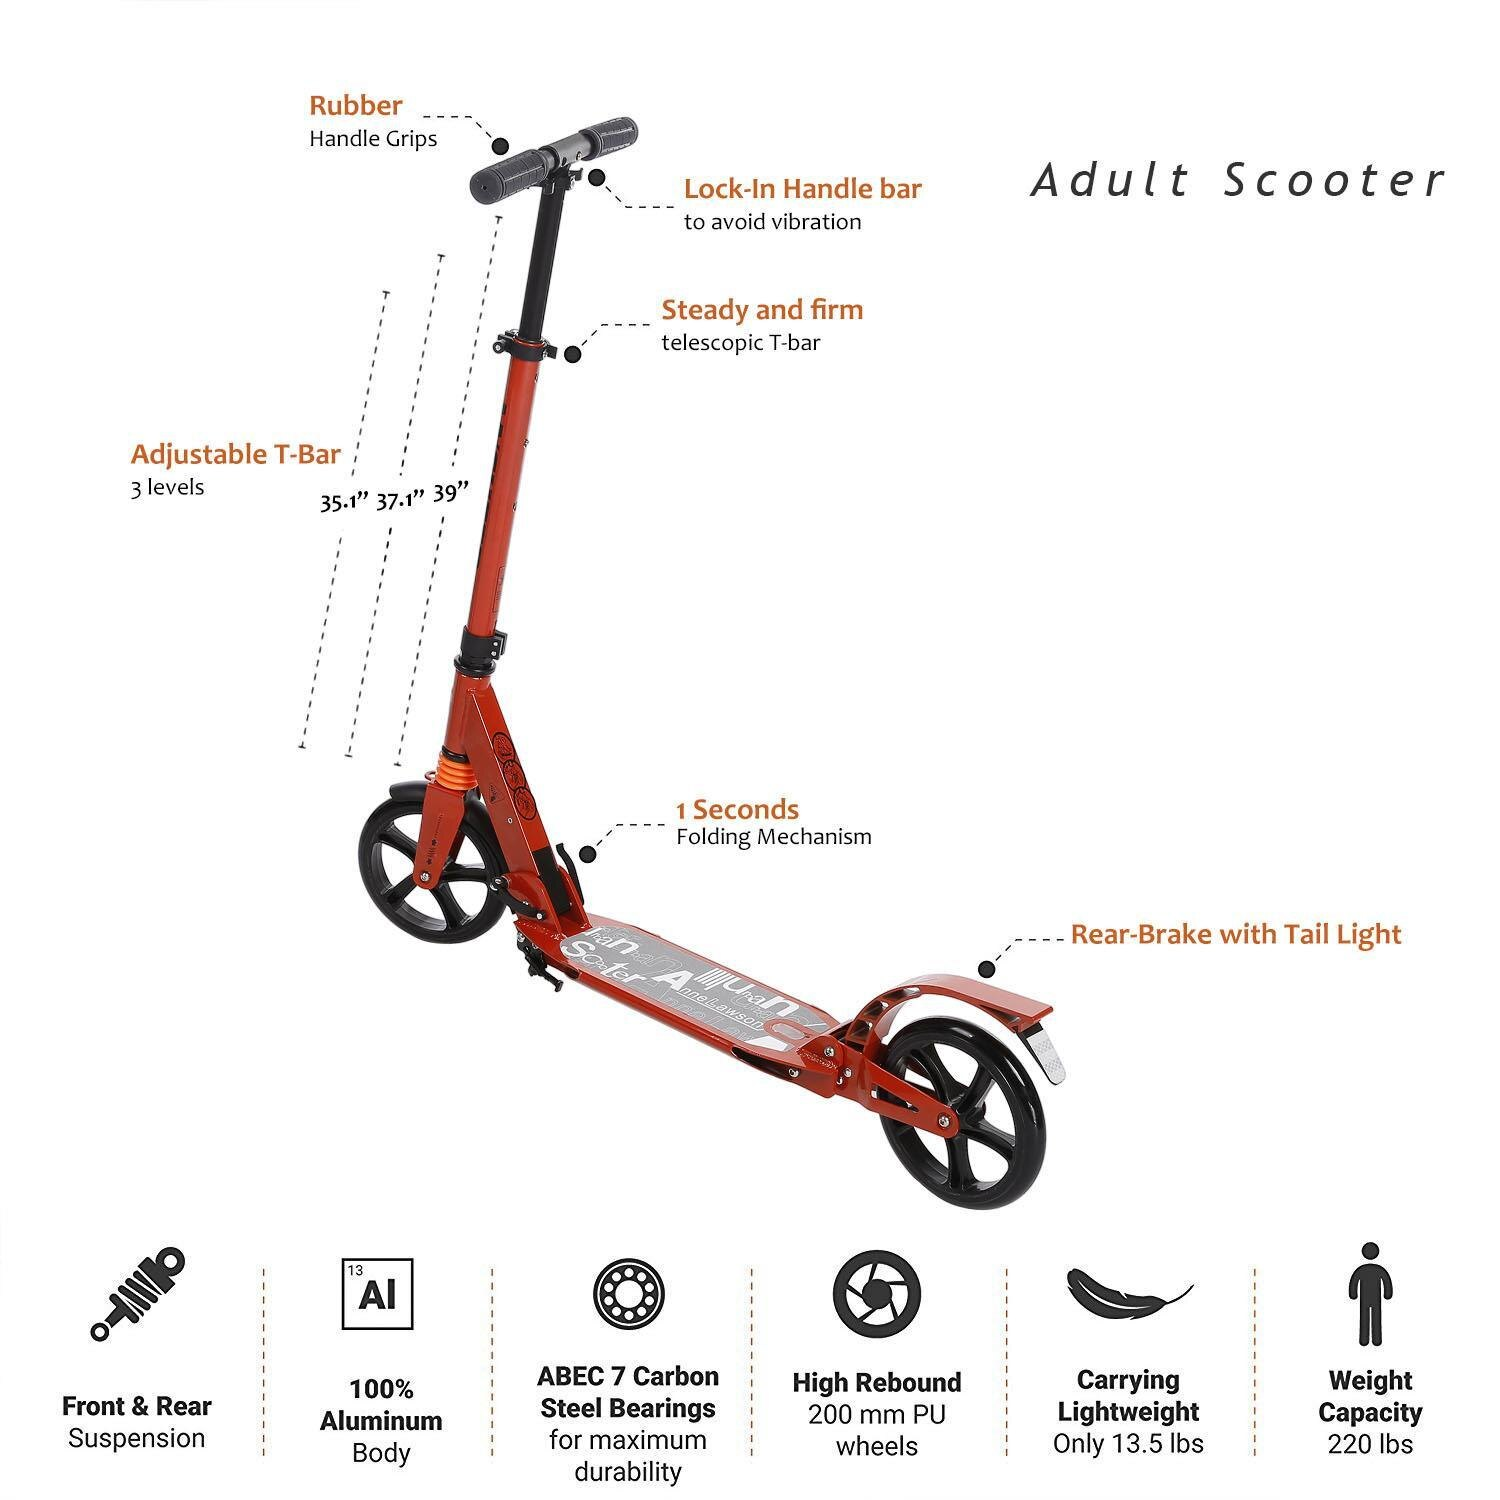 Scooter Sturdy Lightweight Height Adjustable Aluminum Alloy T-Style Foldable Design Adults 0